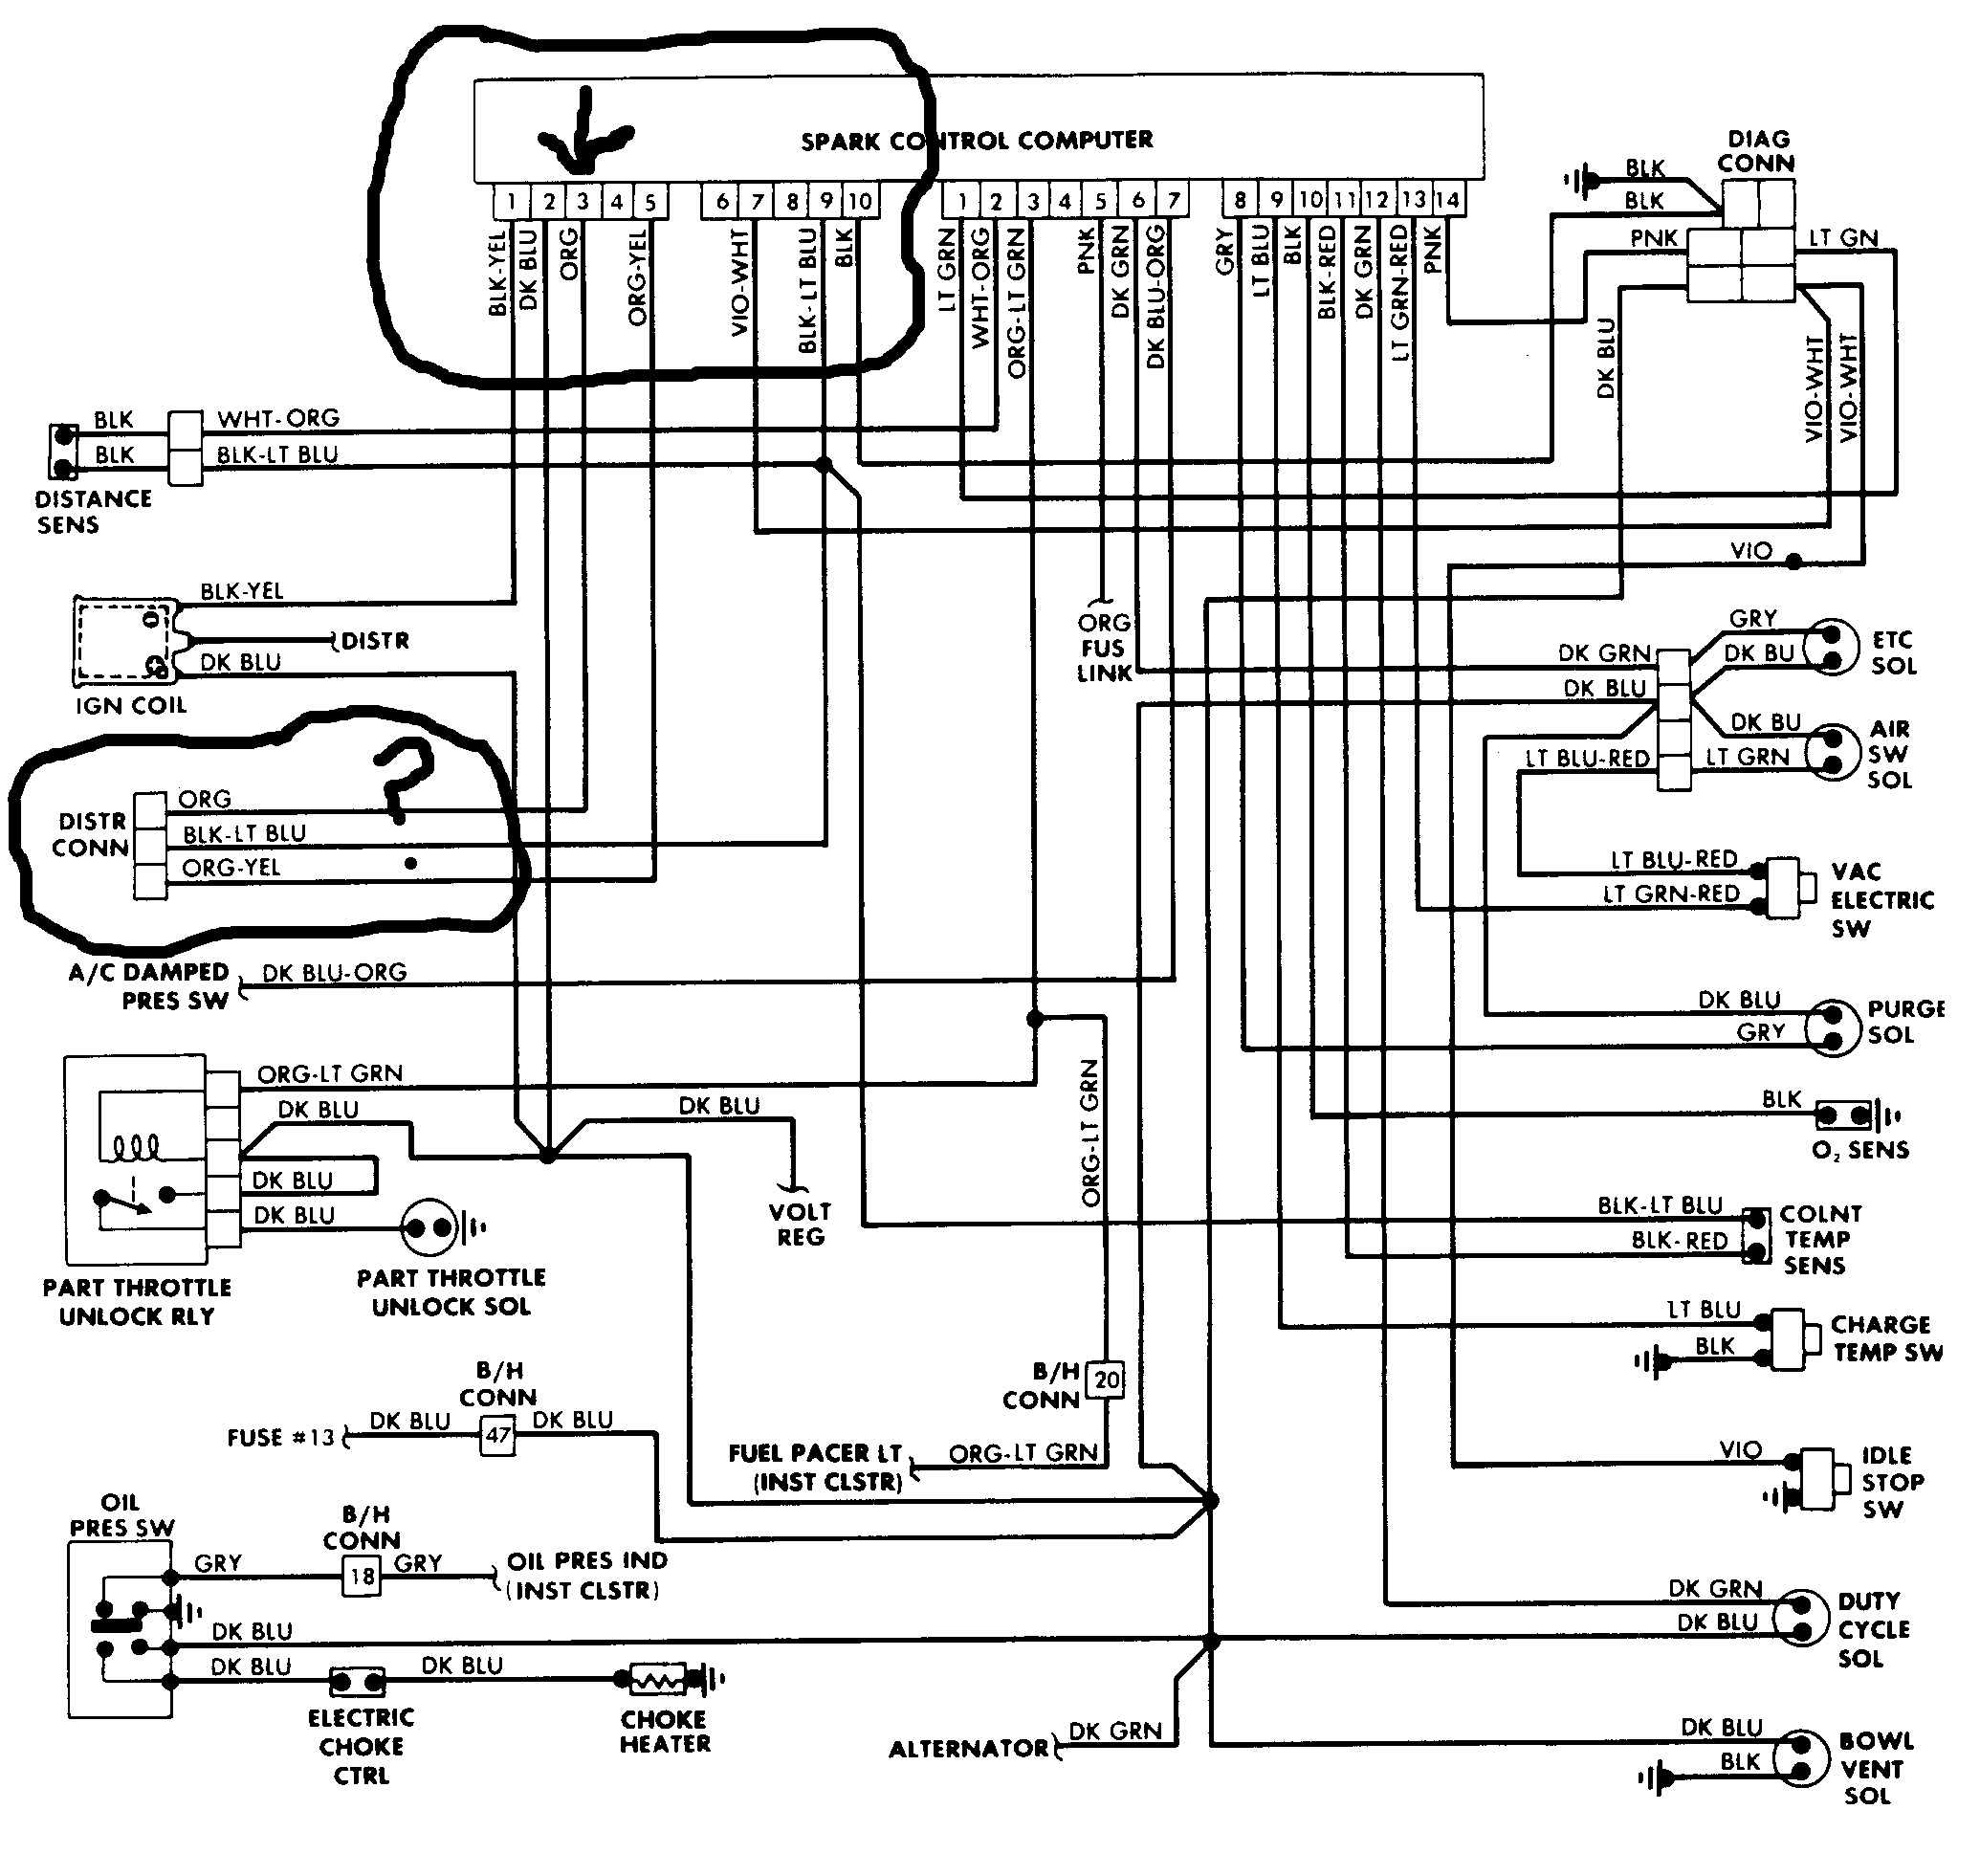 1997 dakota wiring diagram